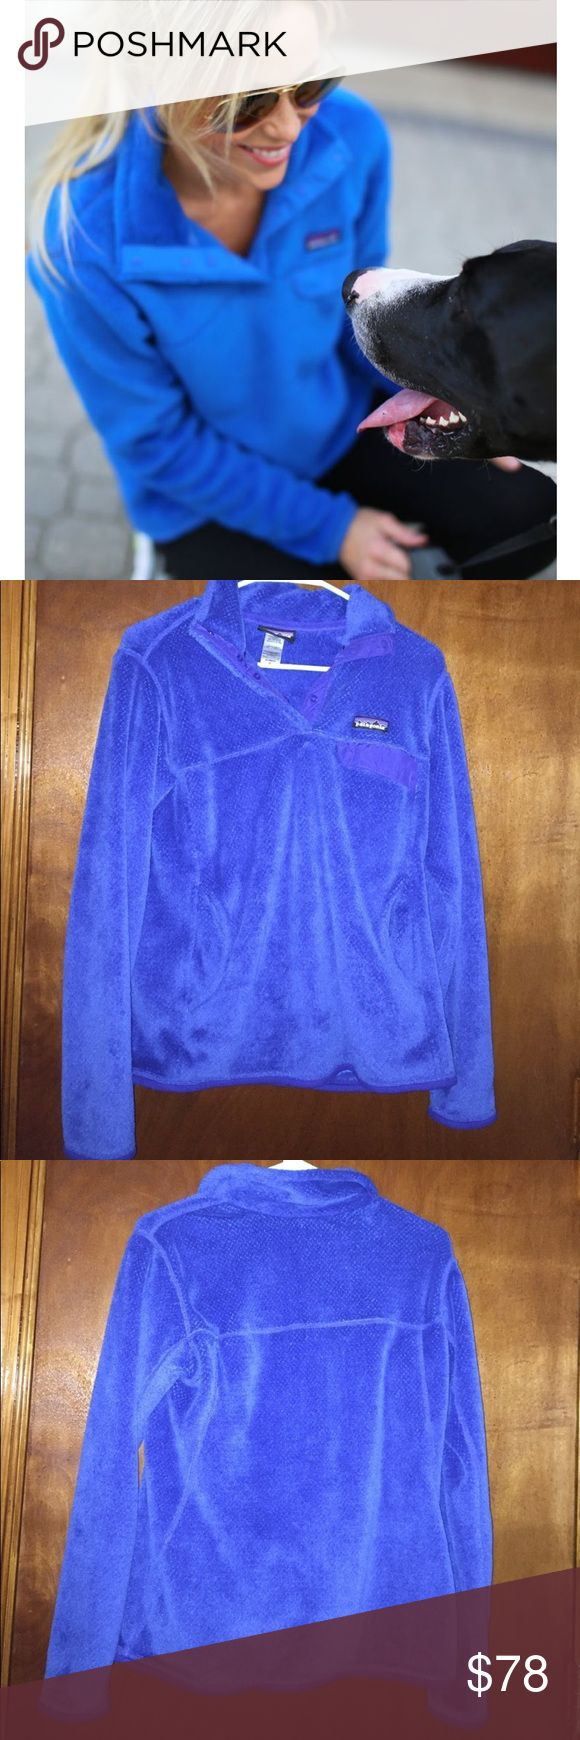 Patagonia Royal Blue T Snap Re-Tool Pullover Royal blue t Snap re-tool Pullover. RePosh because the size is just too big on me. I'm typically a Small in Patagonia but am obsessed with the color and how soft it is! EUC no stains, pilling or snags anywhere. Almost like new! Patagonia Sweaters